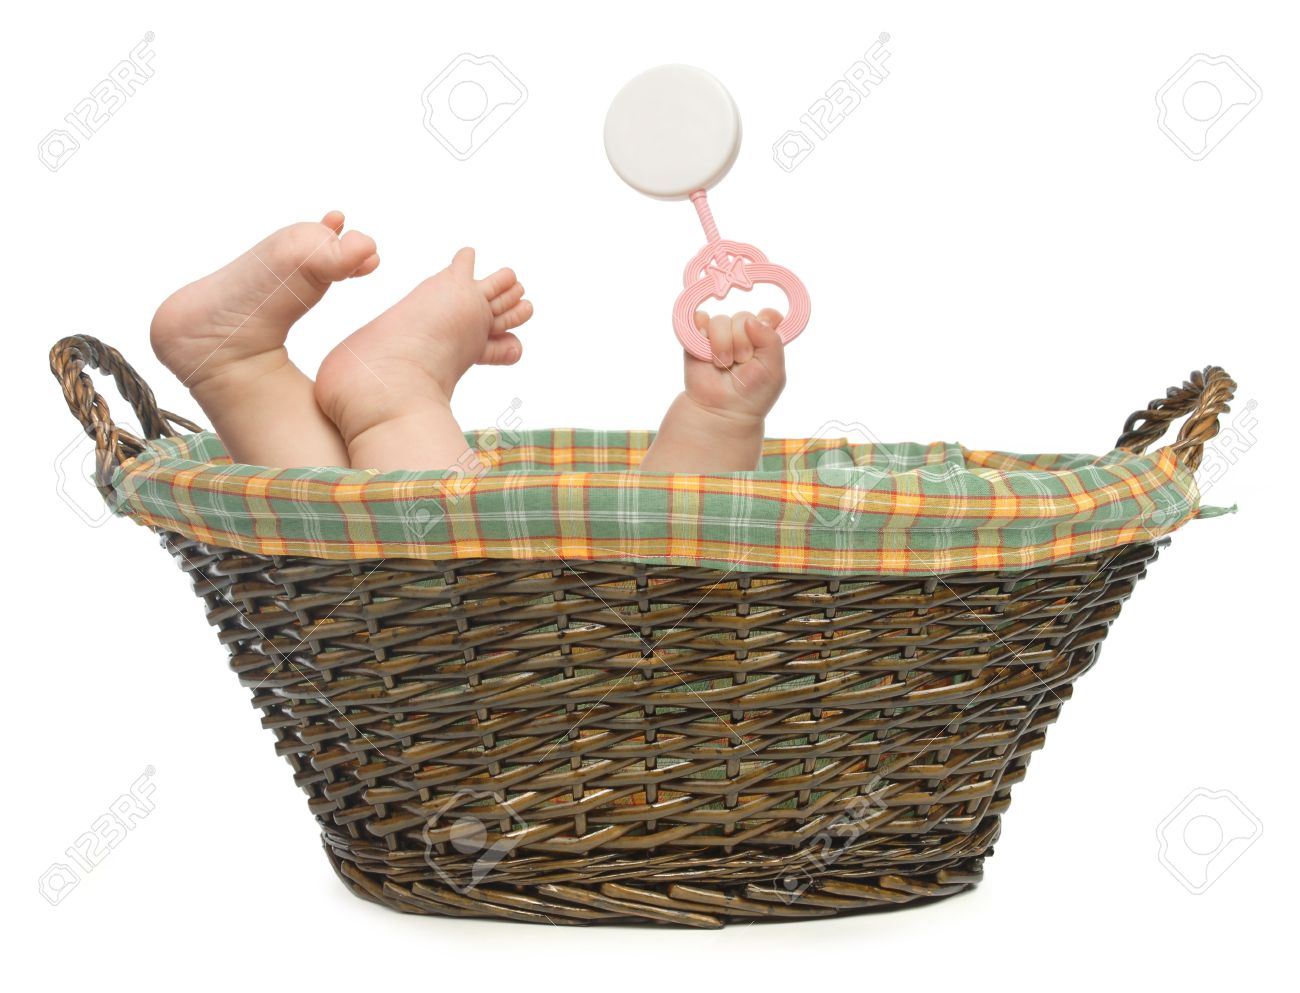 Baby in Basket Stock Photo - 9524911